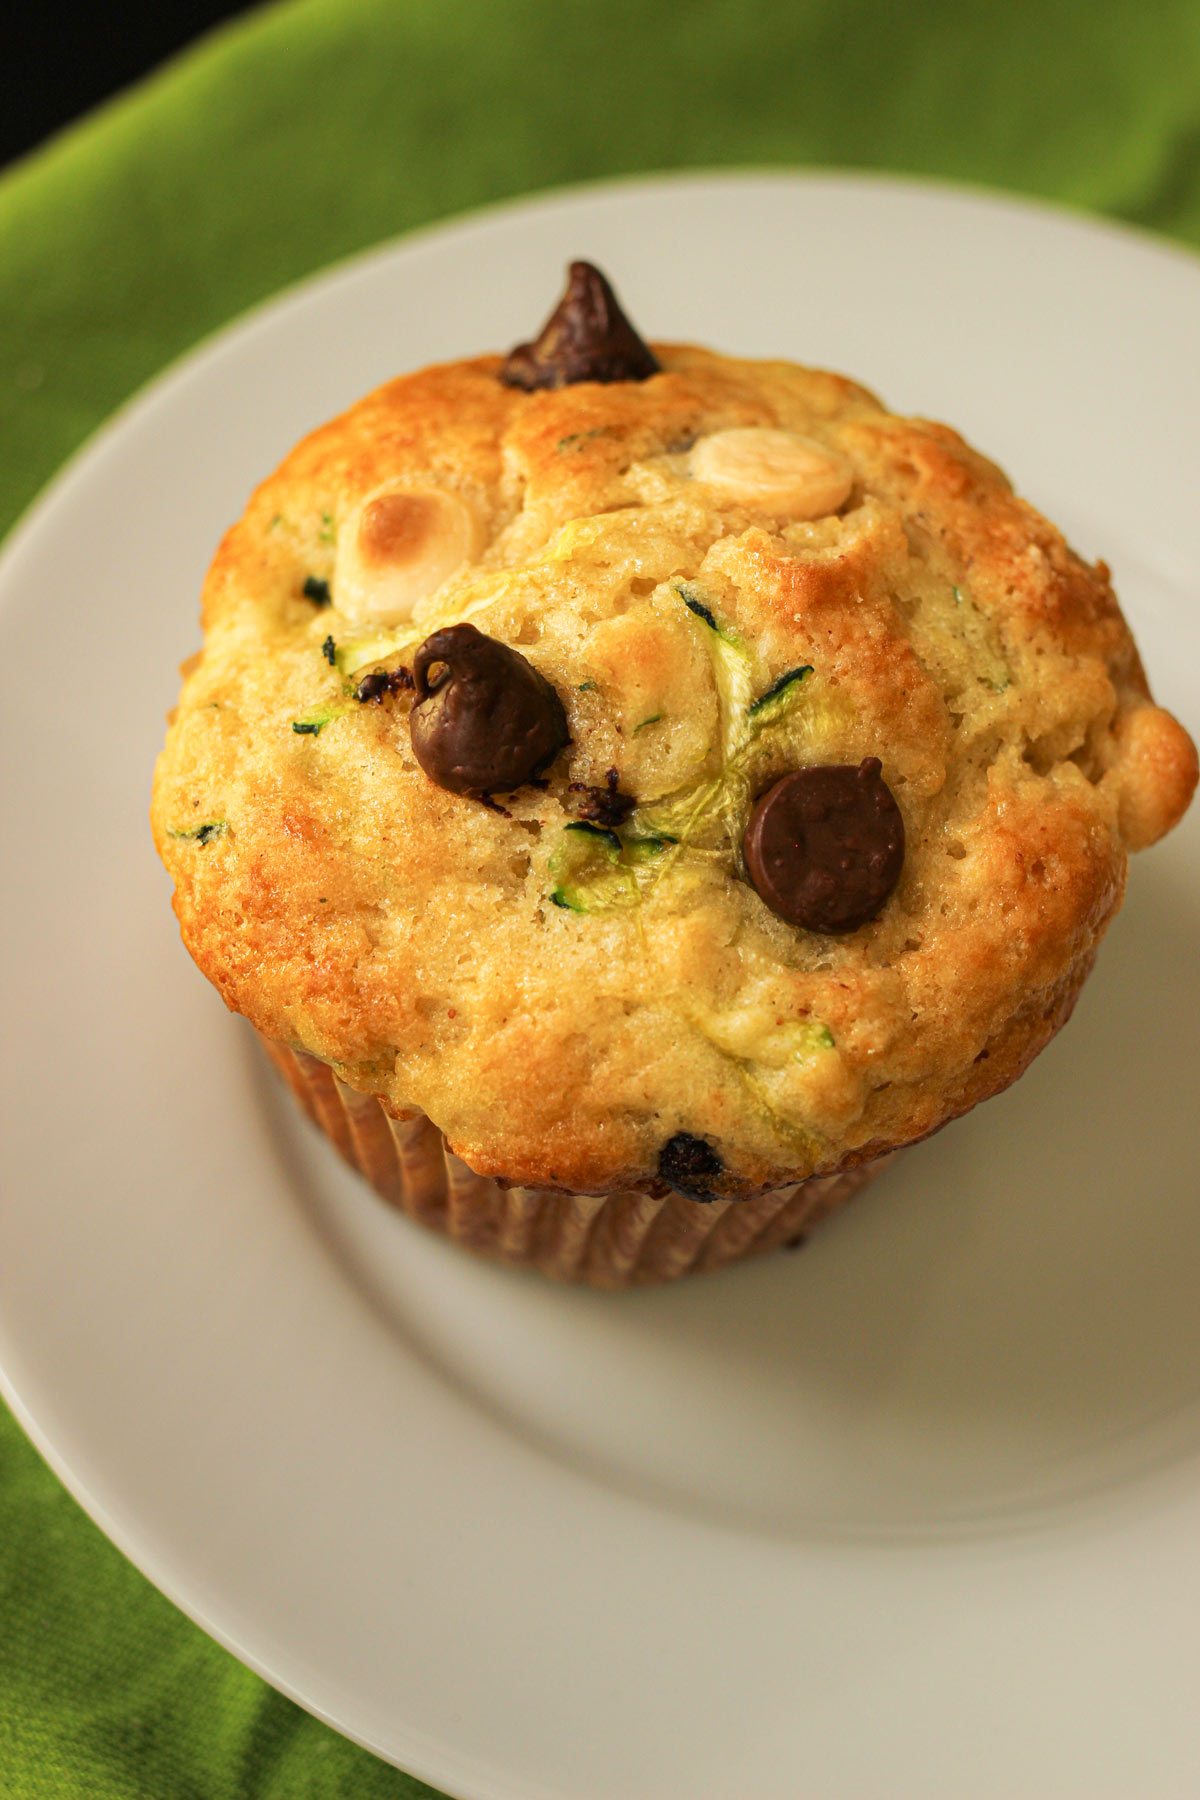 single chocolate chip zucchini muffin with chips poking out on a white dish near a green cloth.